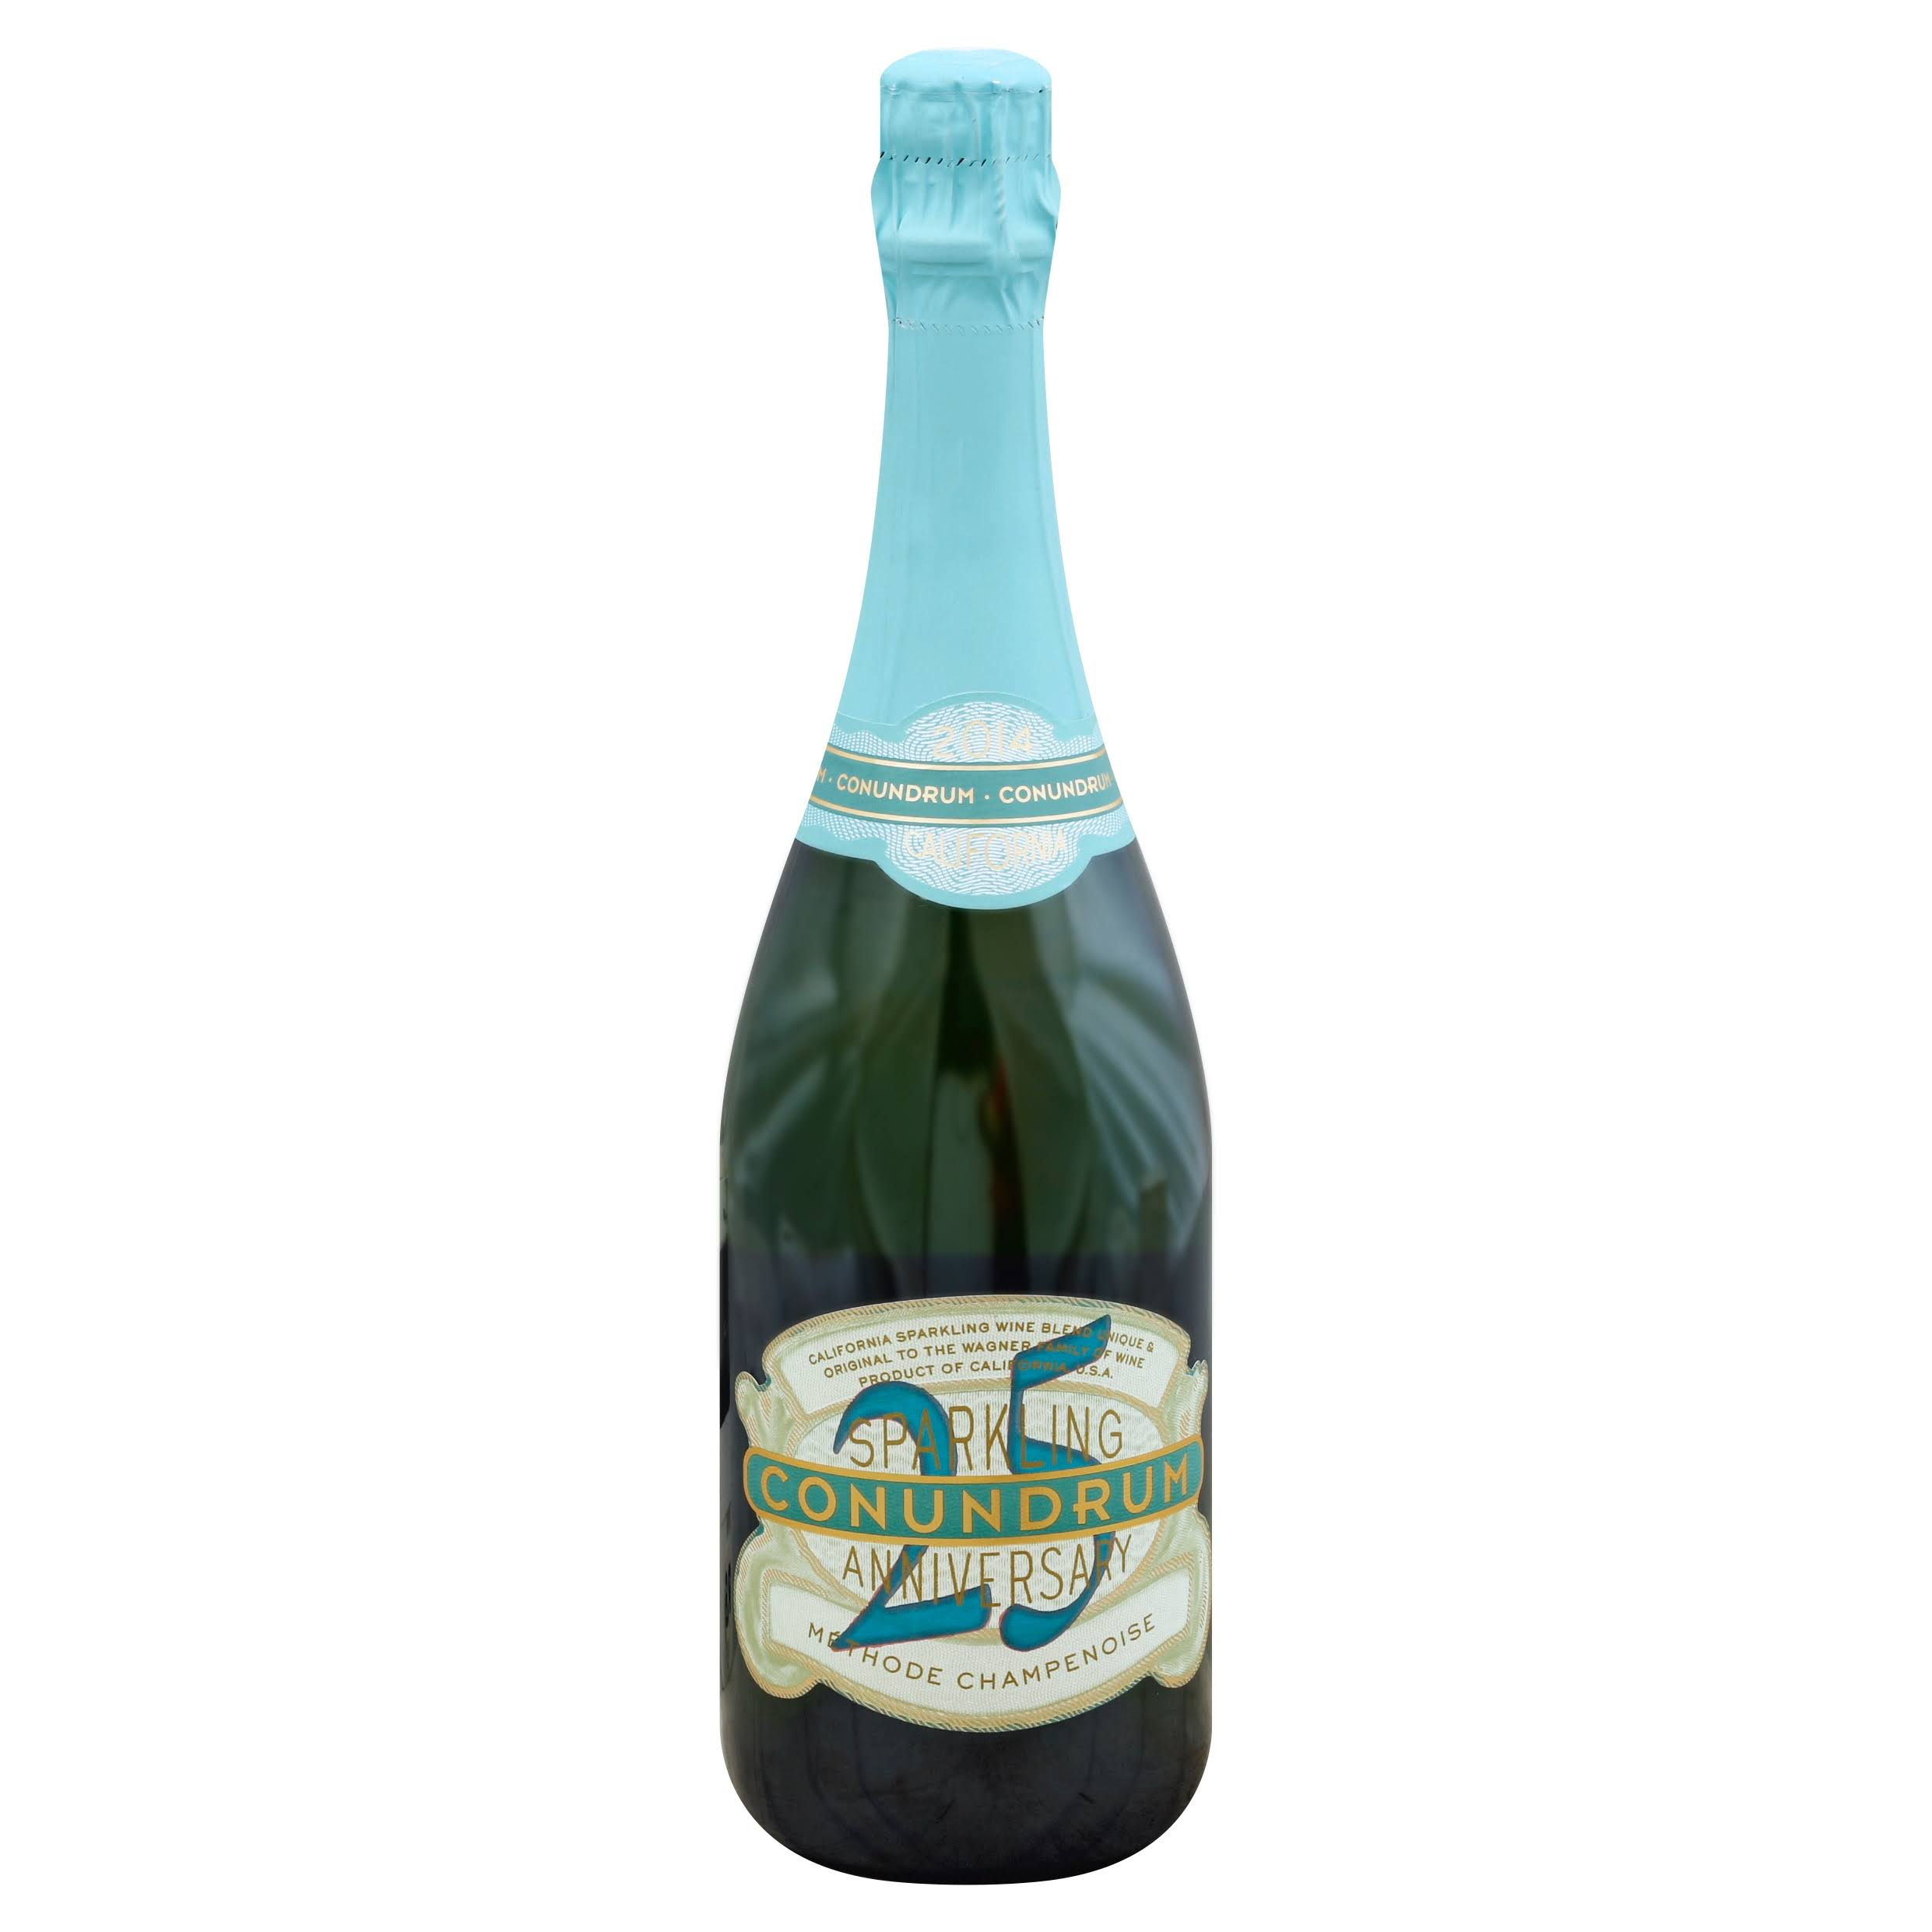 Conundrum Sparkling Champagne, California (Vintage Varies) - 750 ml bottle